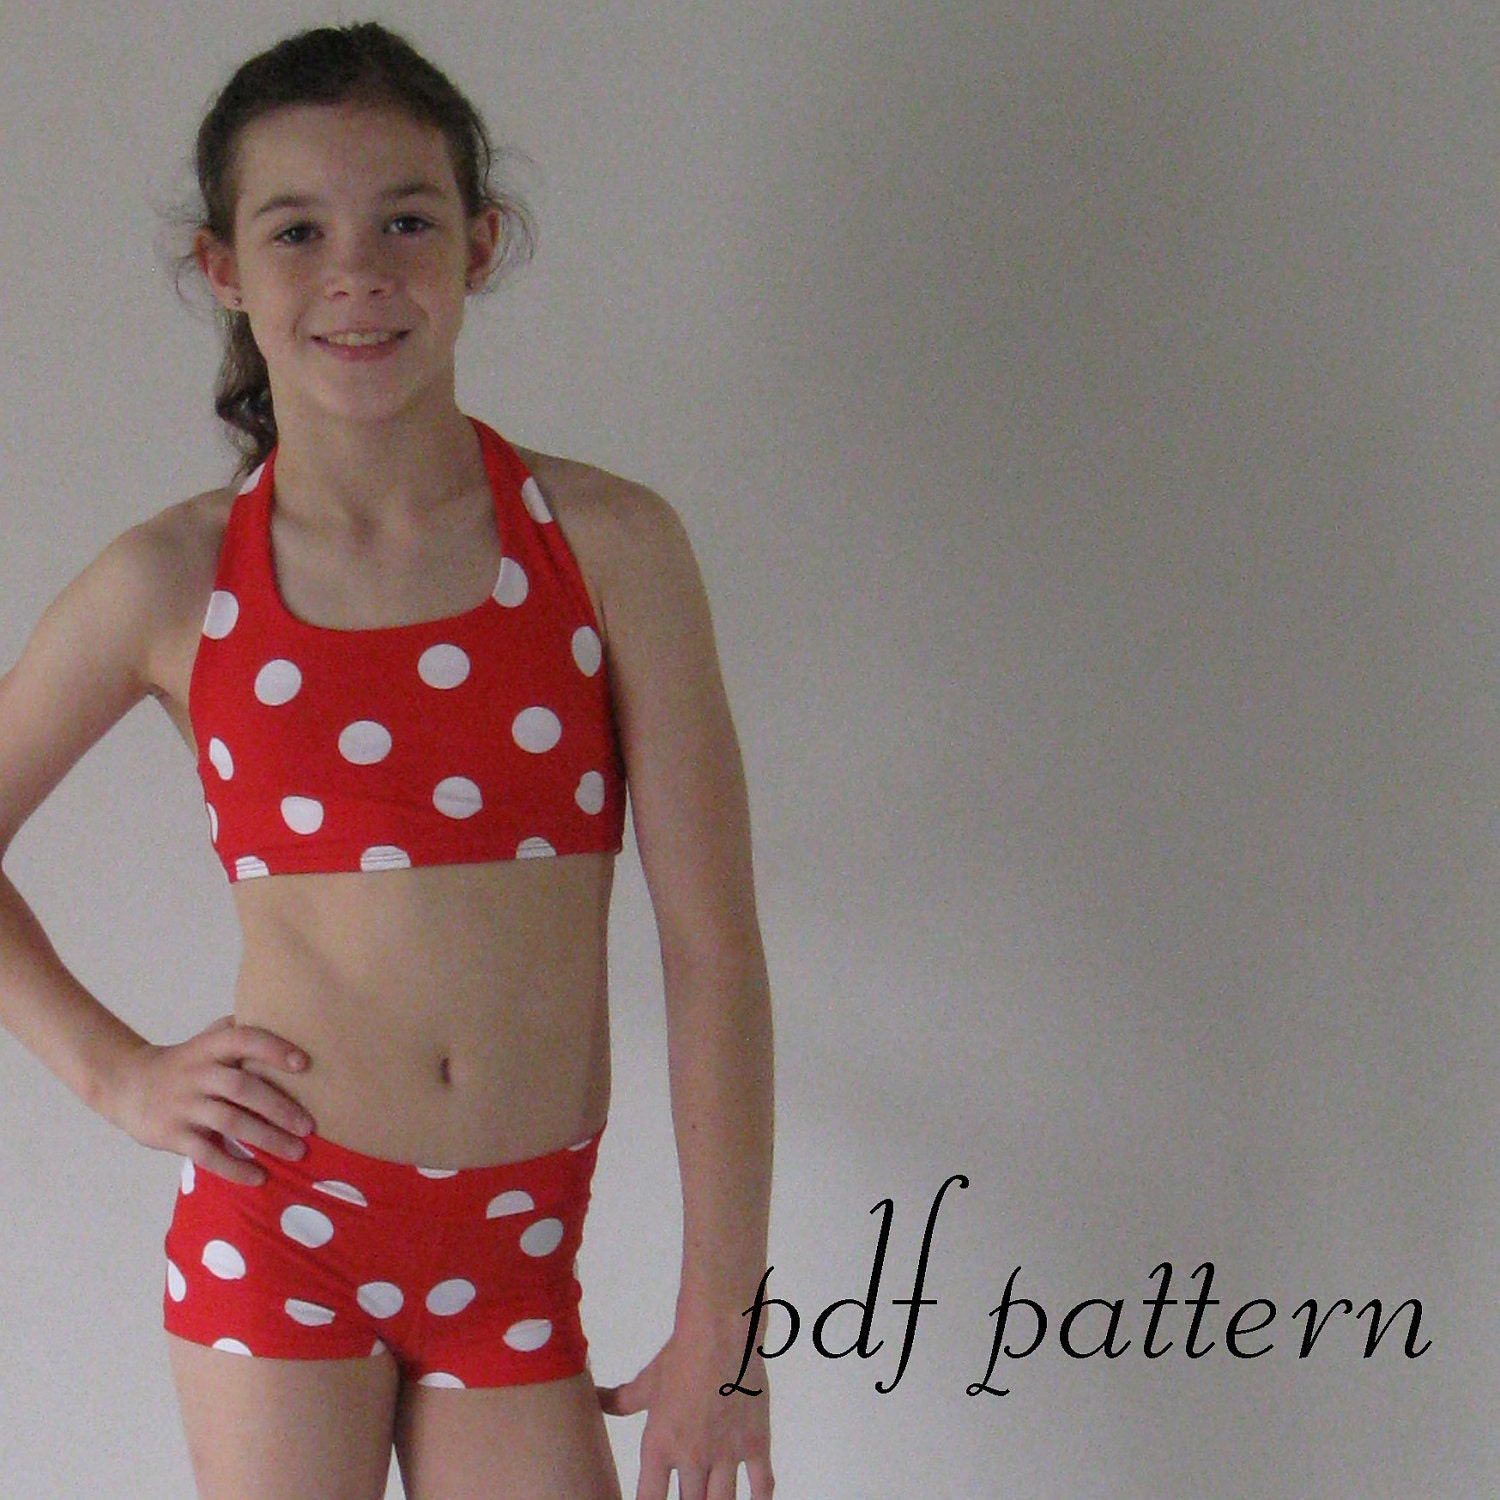 12 Year Old Little Girls in Bathing Suits